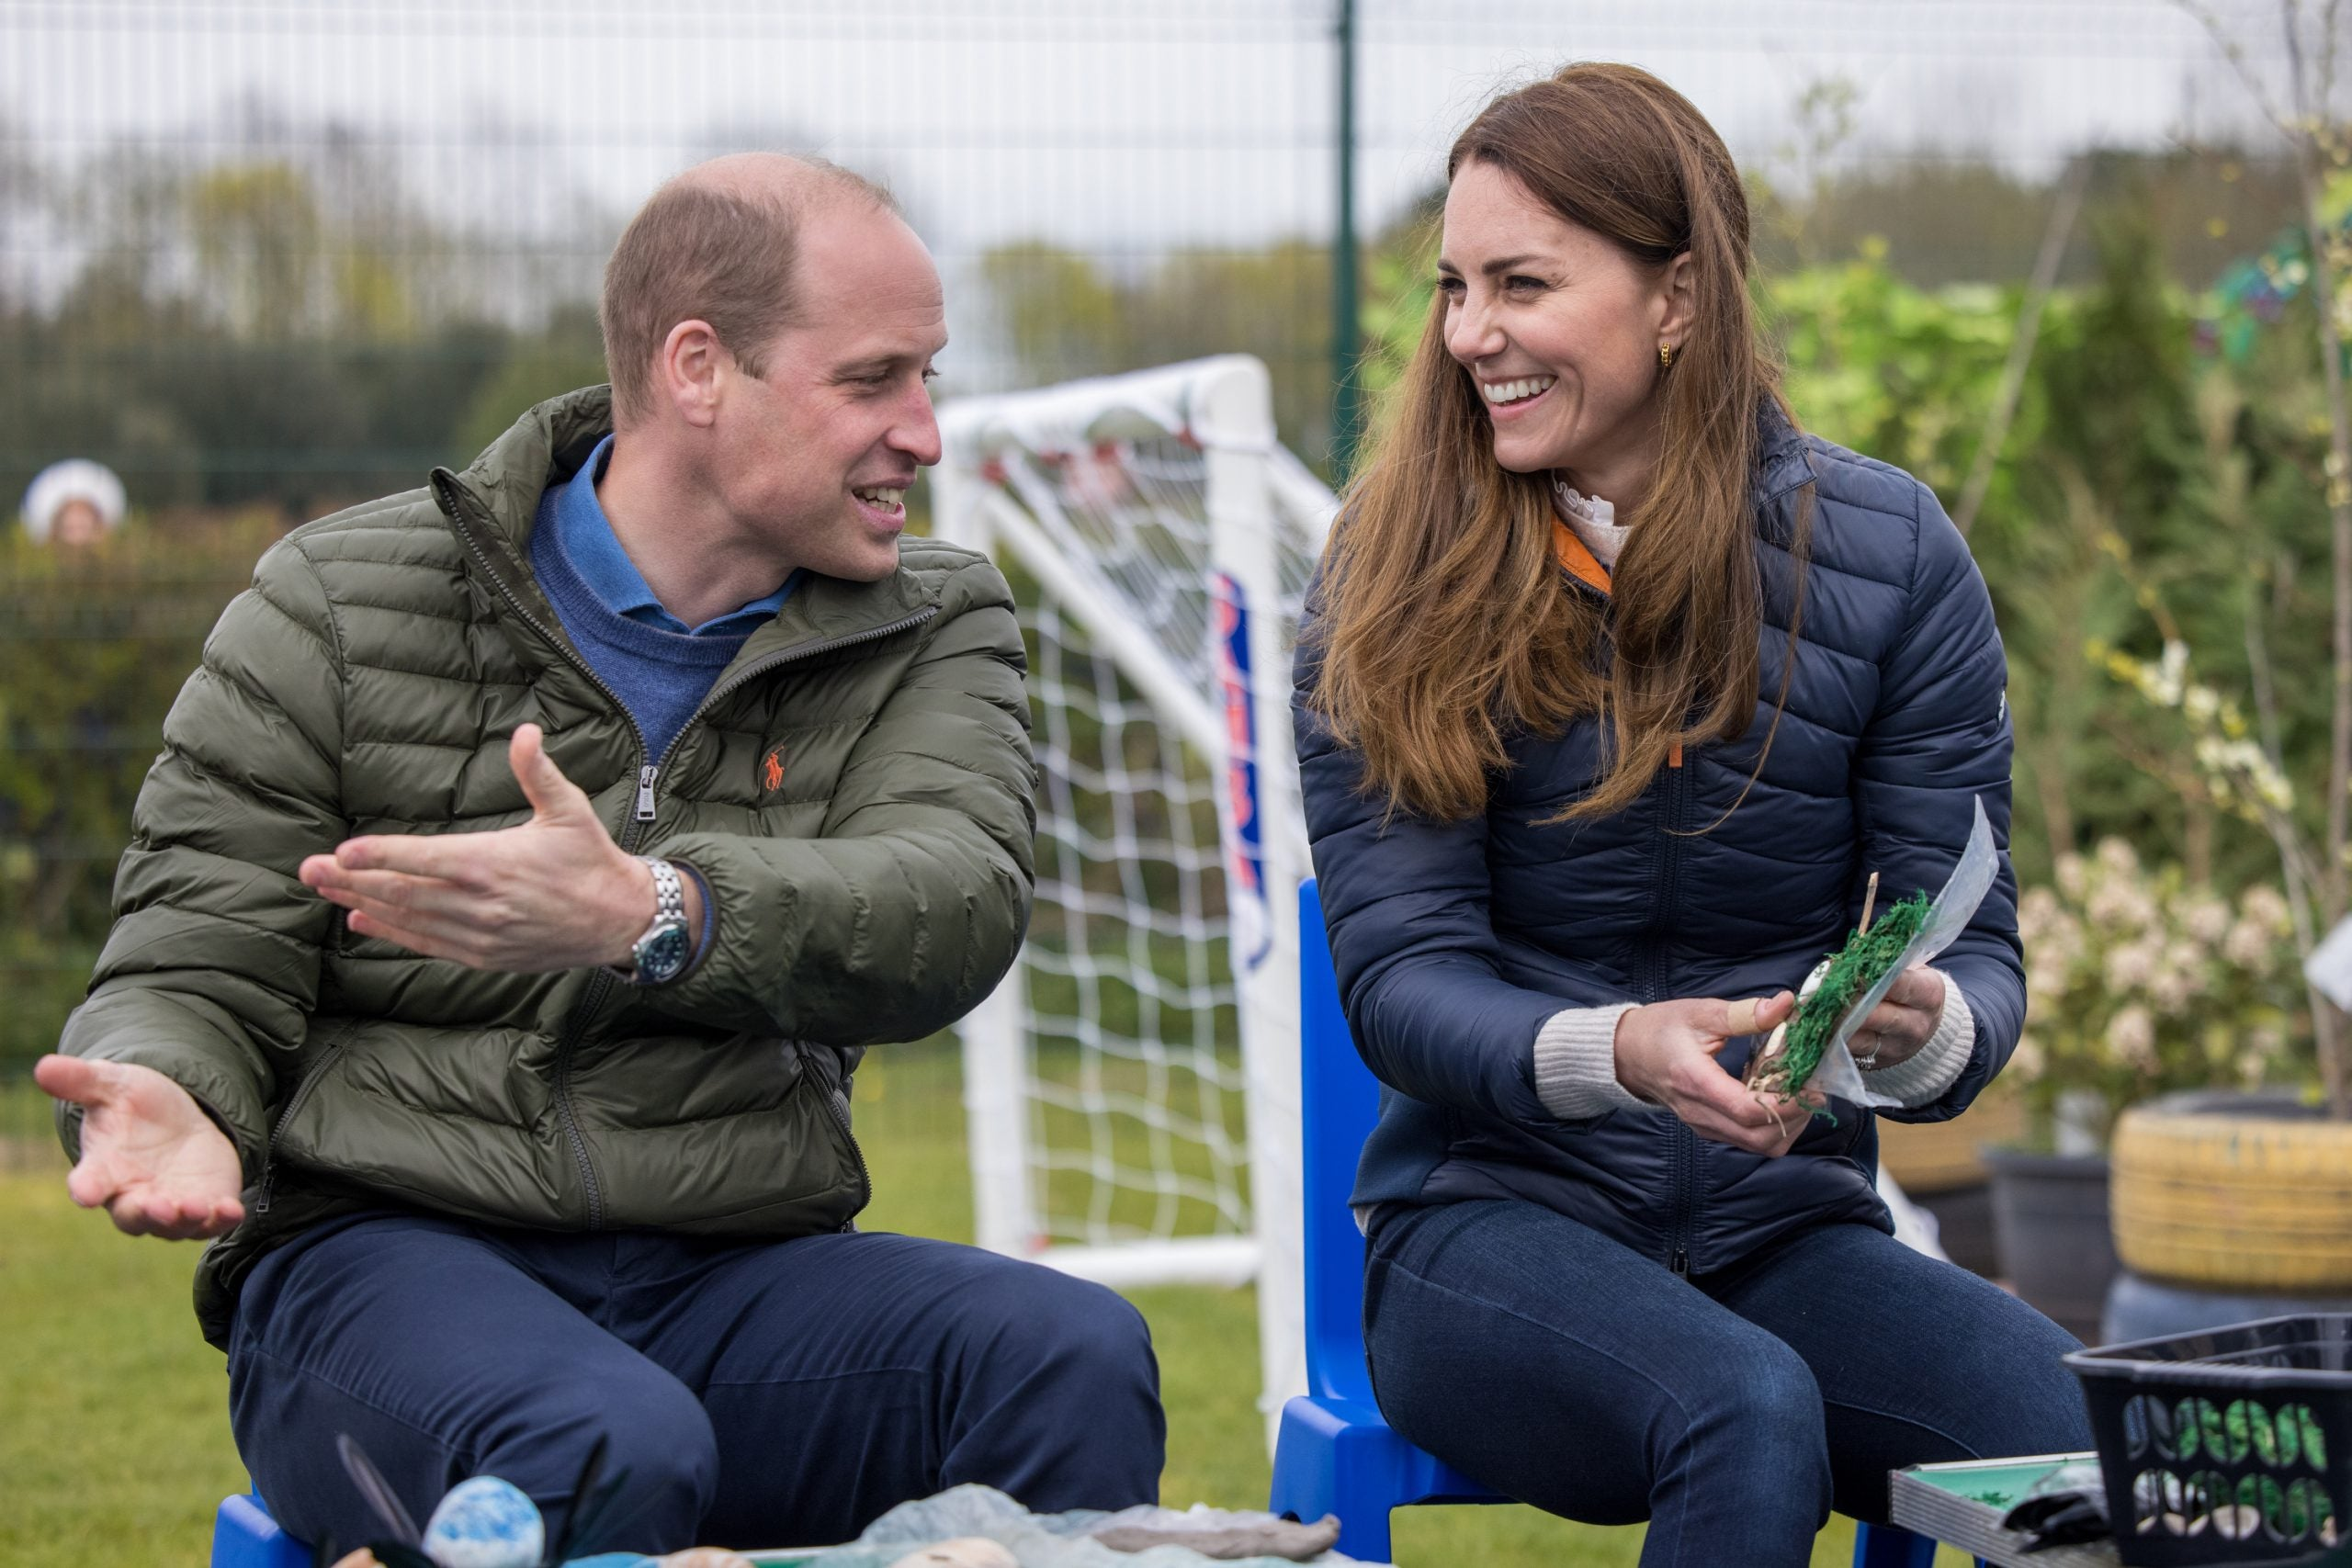 Is the launch of William and Kate's YouTube channel the beginning of a royal rebrand?